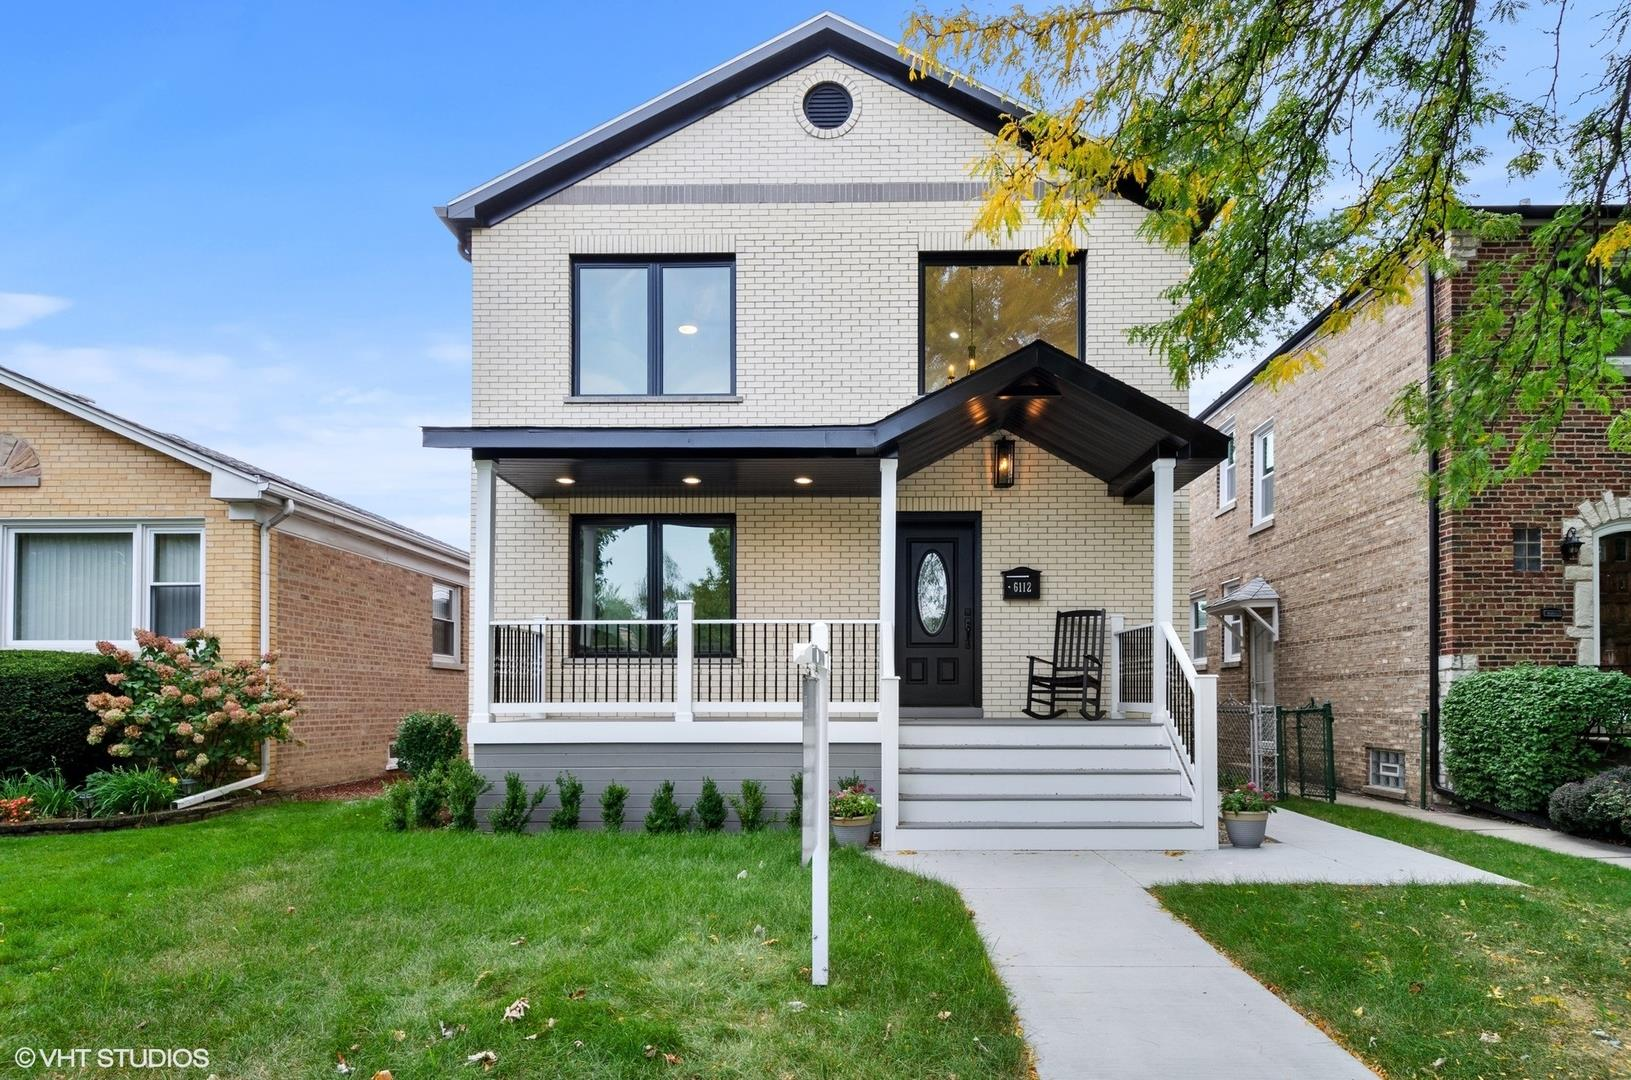 6112 N KEDVALE Avenue, Chicago, IL 60646 - #: 10882296